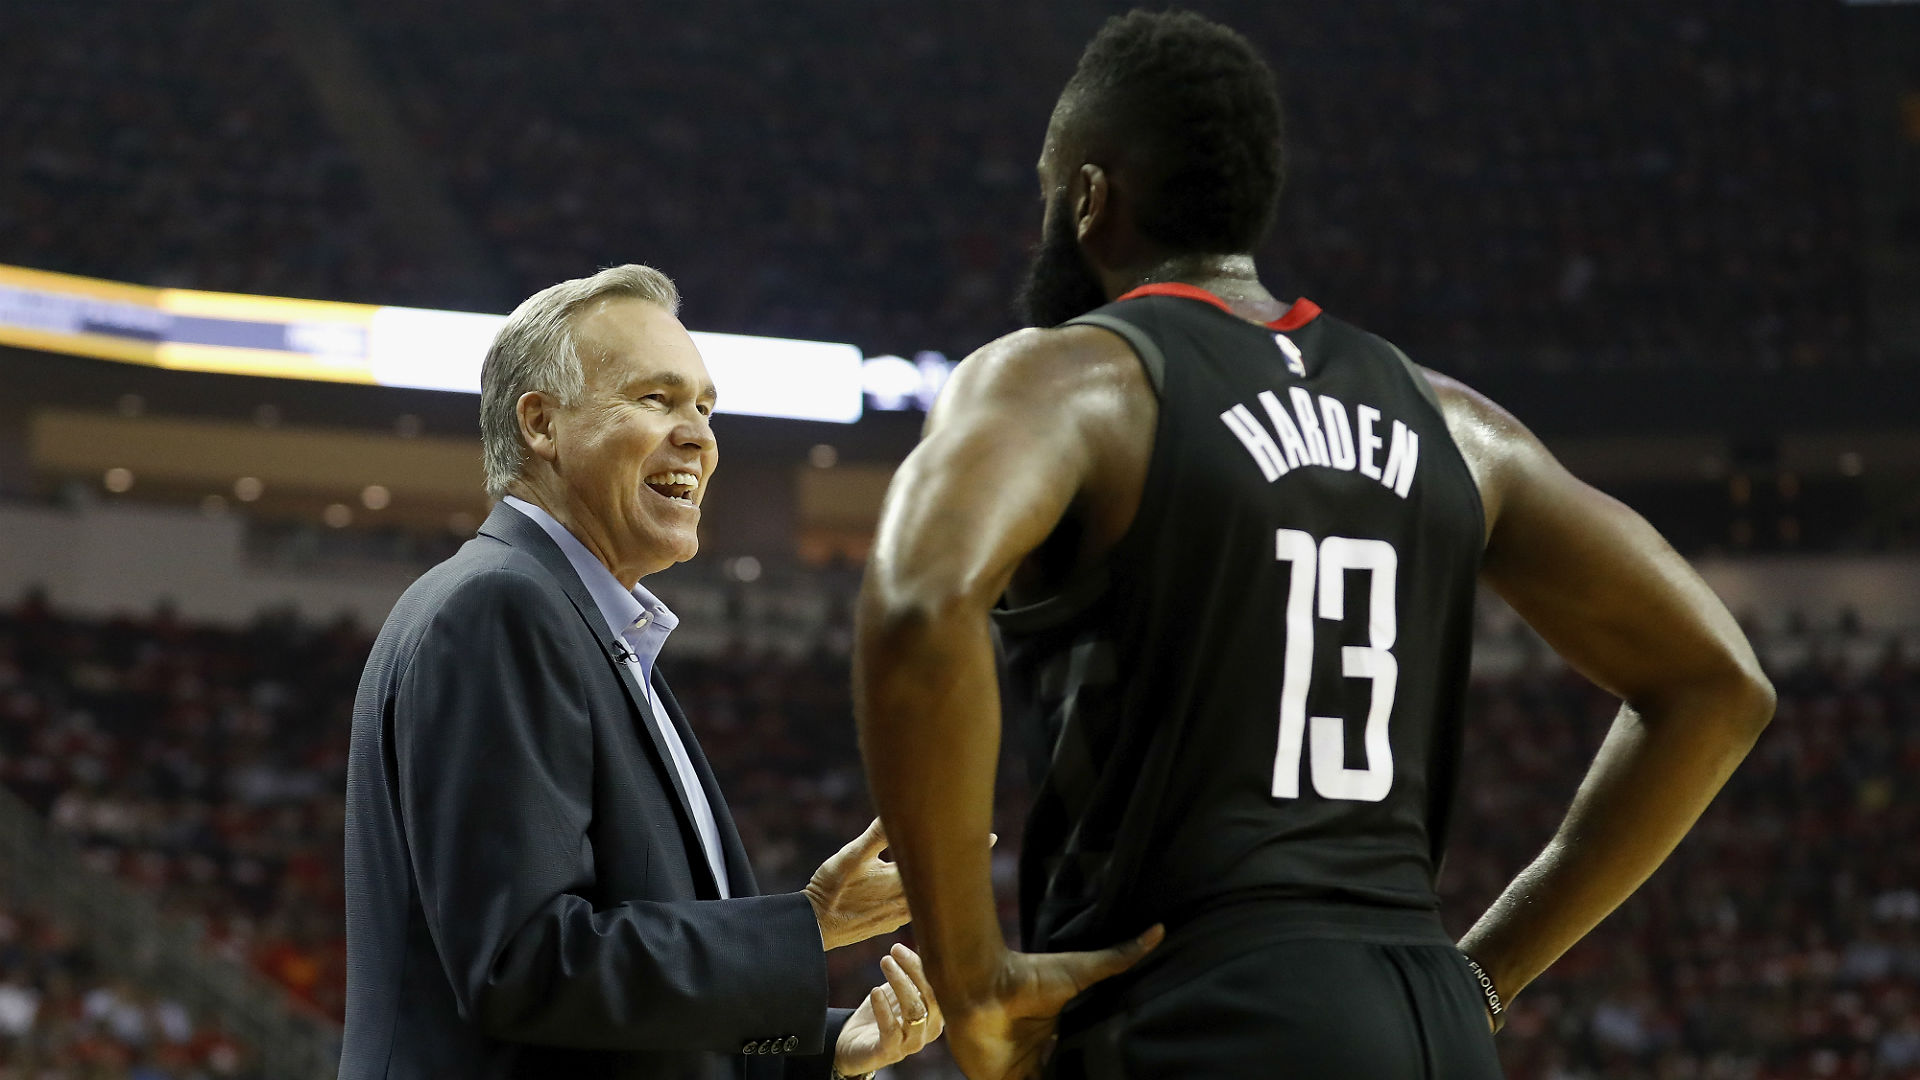 Mike D'Antoni isn't thinking extension as Rockets alter team dynamics, agent says